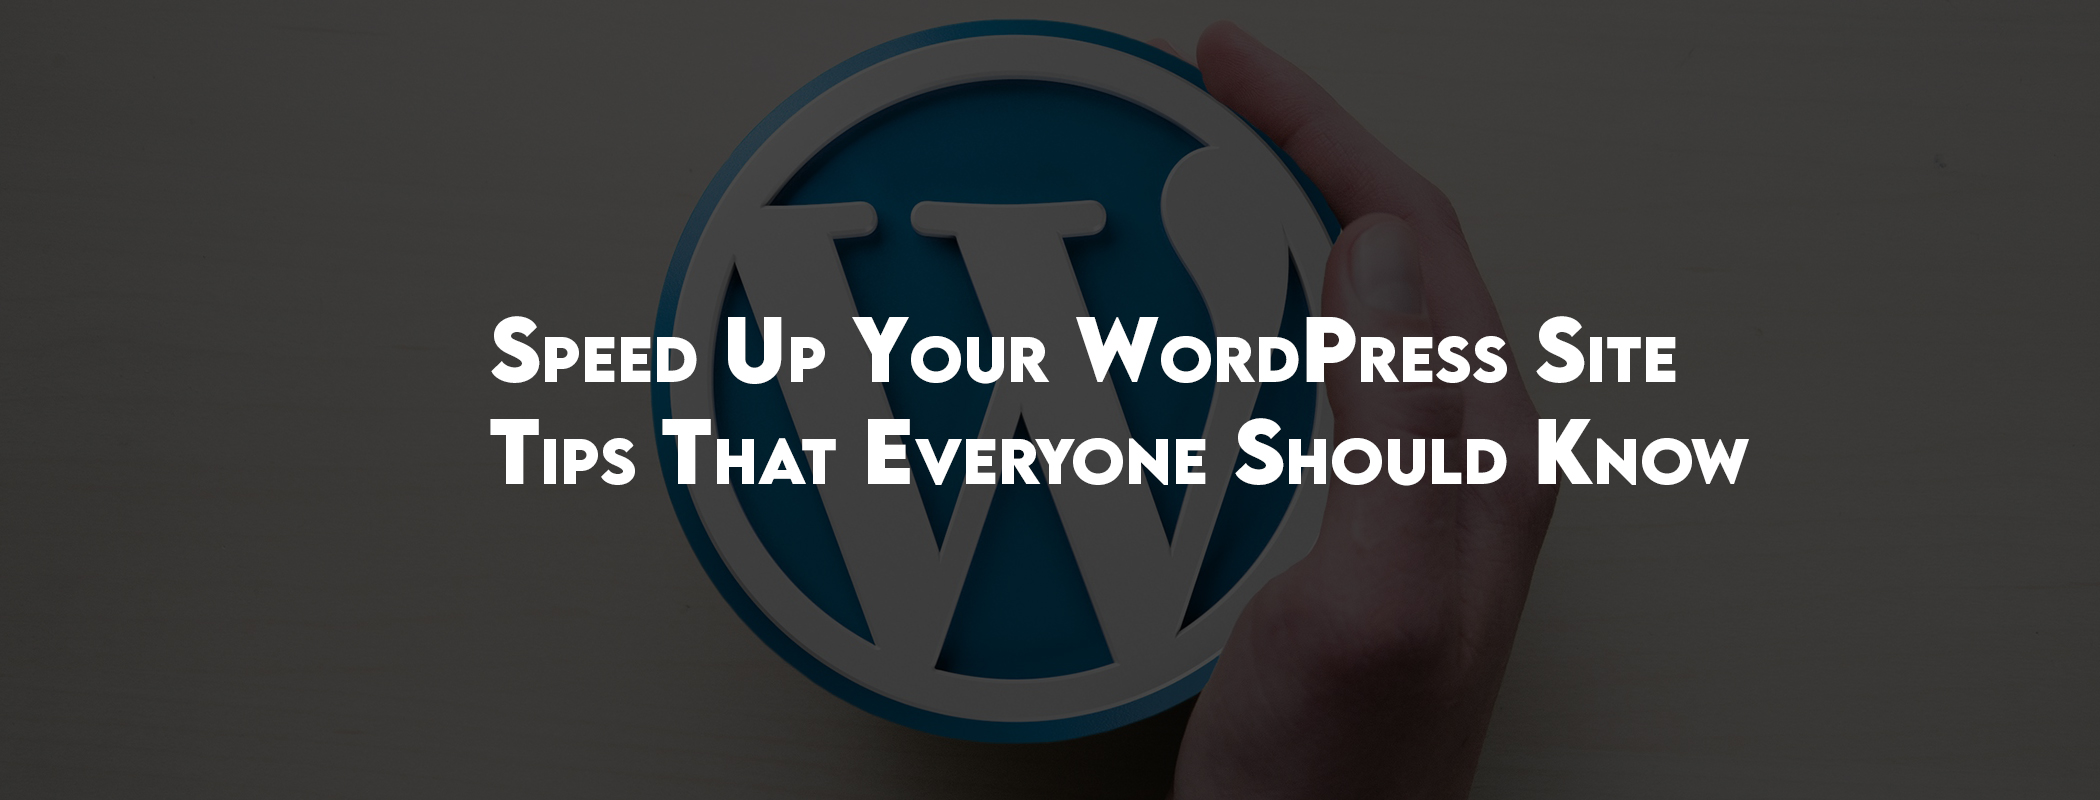 Speed Up Your WordPress Site - Tips That Everyone Should Know